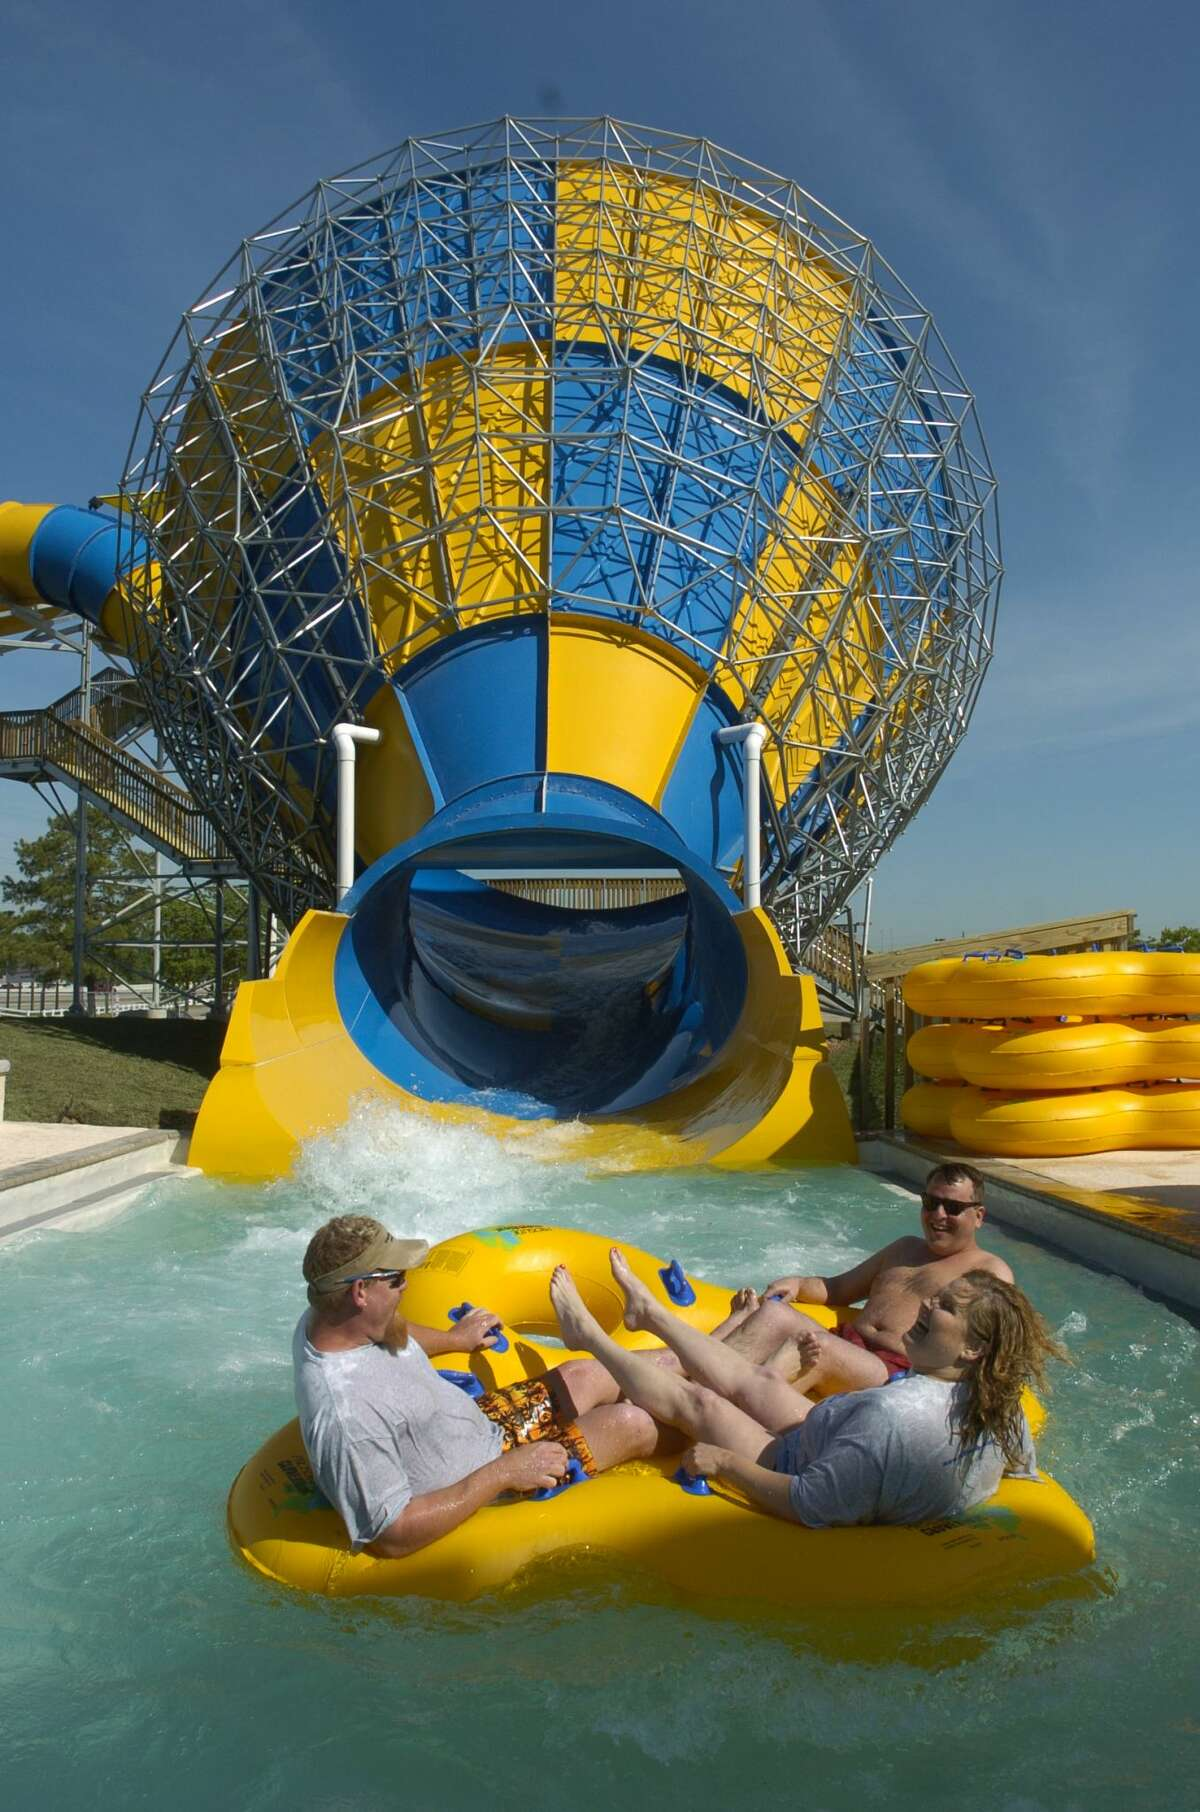 SpringCry about how you miss Waterworld while you speed down a slide at Wet N' Wild SplashTown, formerly Six Flags SplashTown.